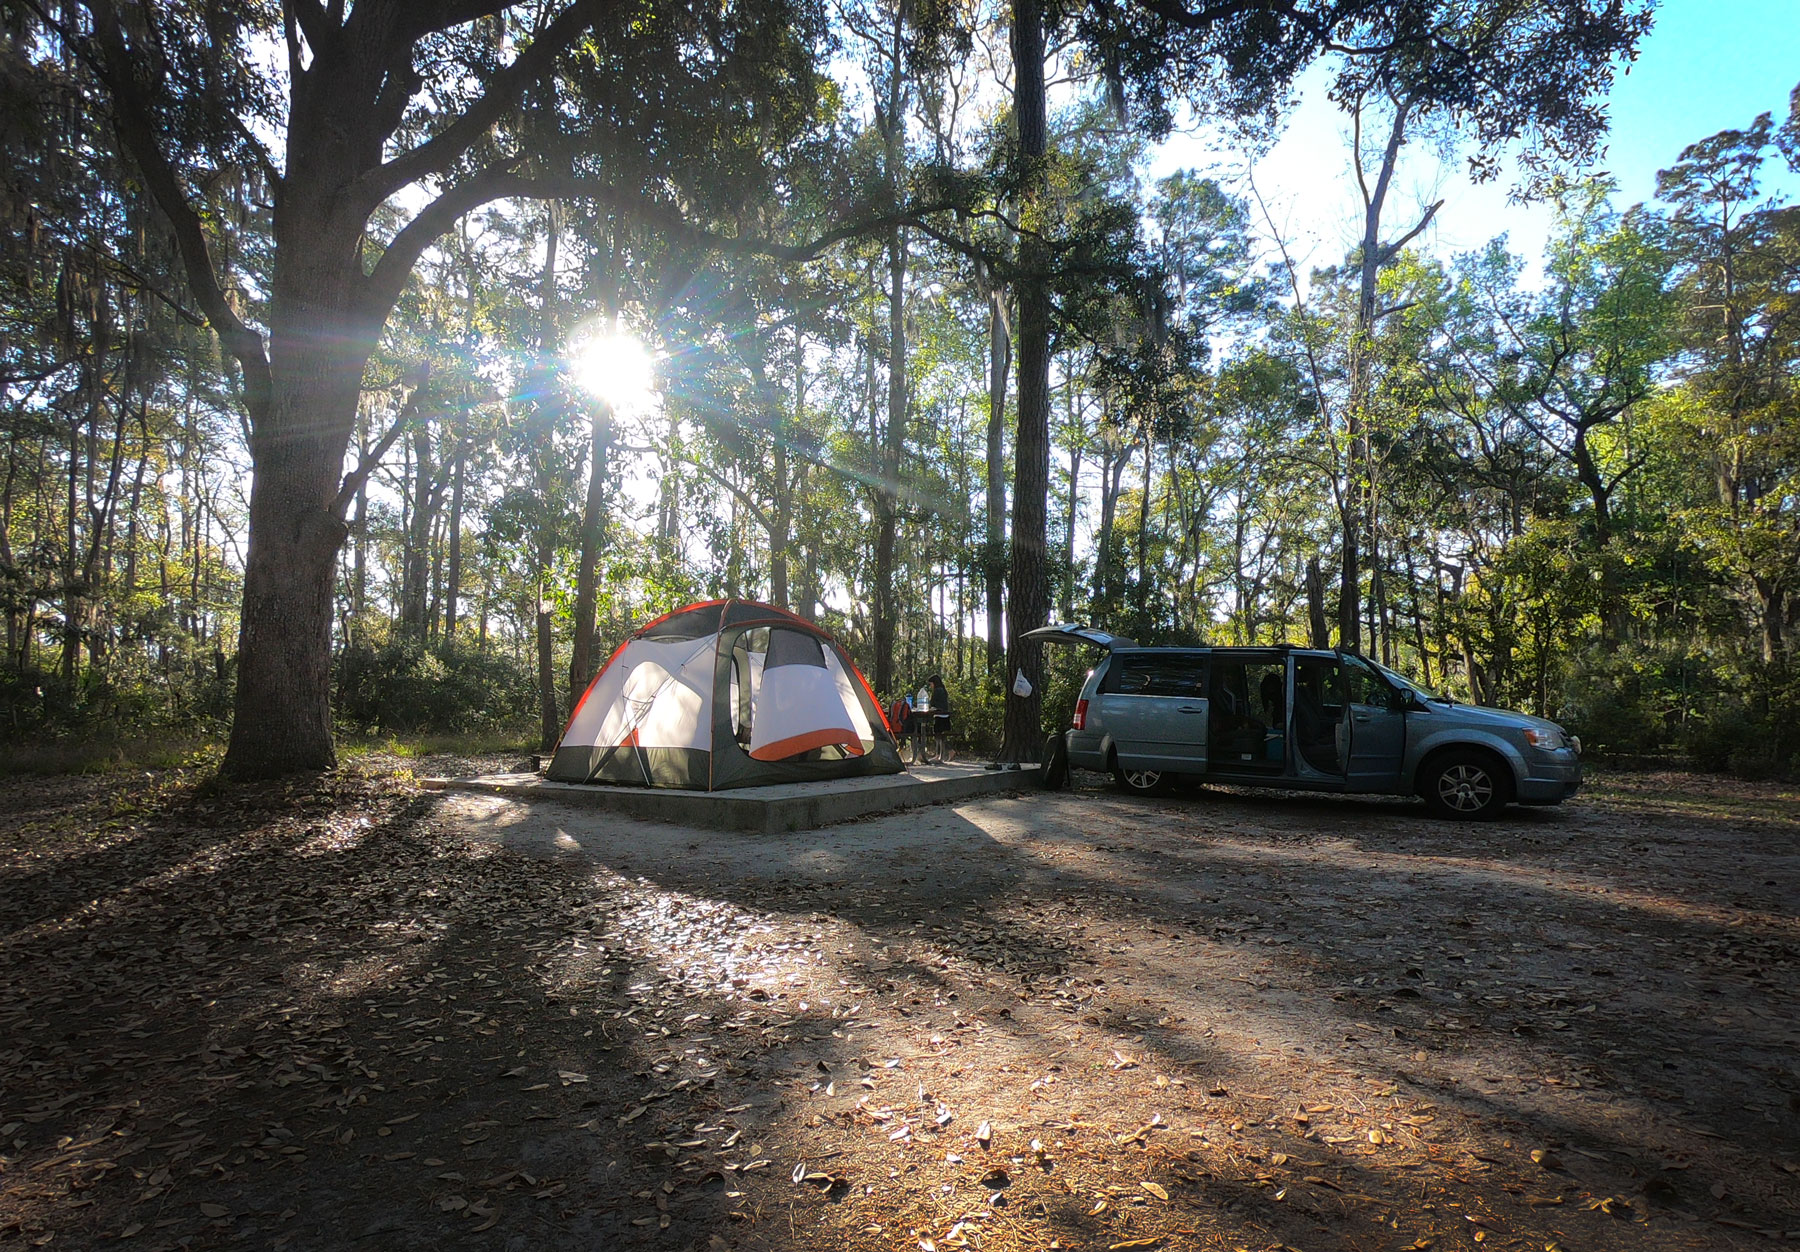 Setting up spacious campsite with tent and van while camping at Skidaway Island State Park, Georgia